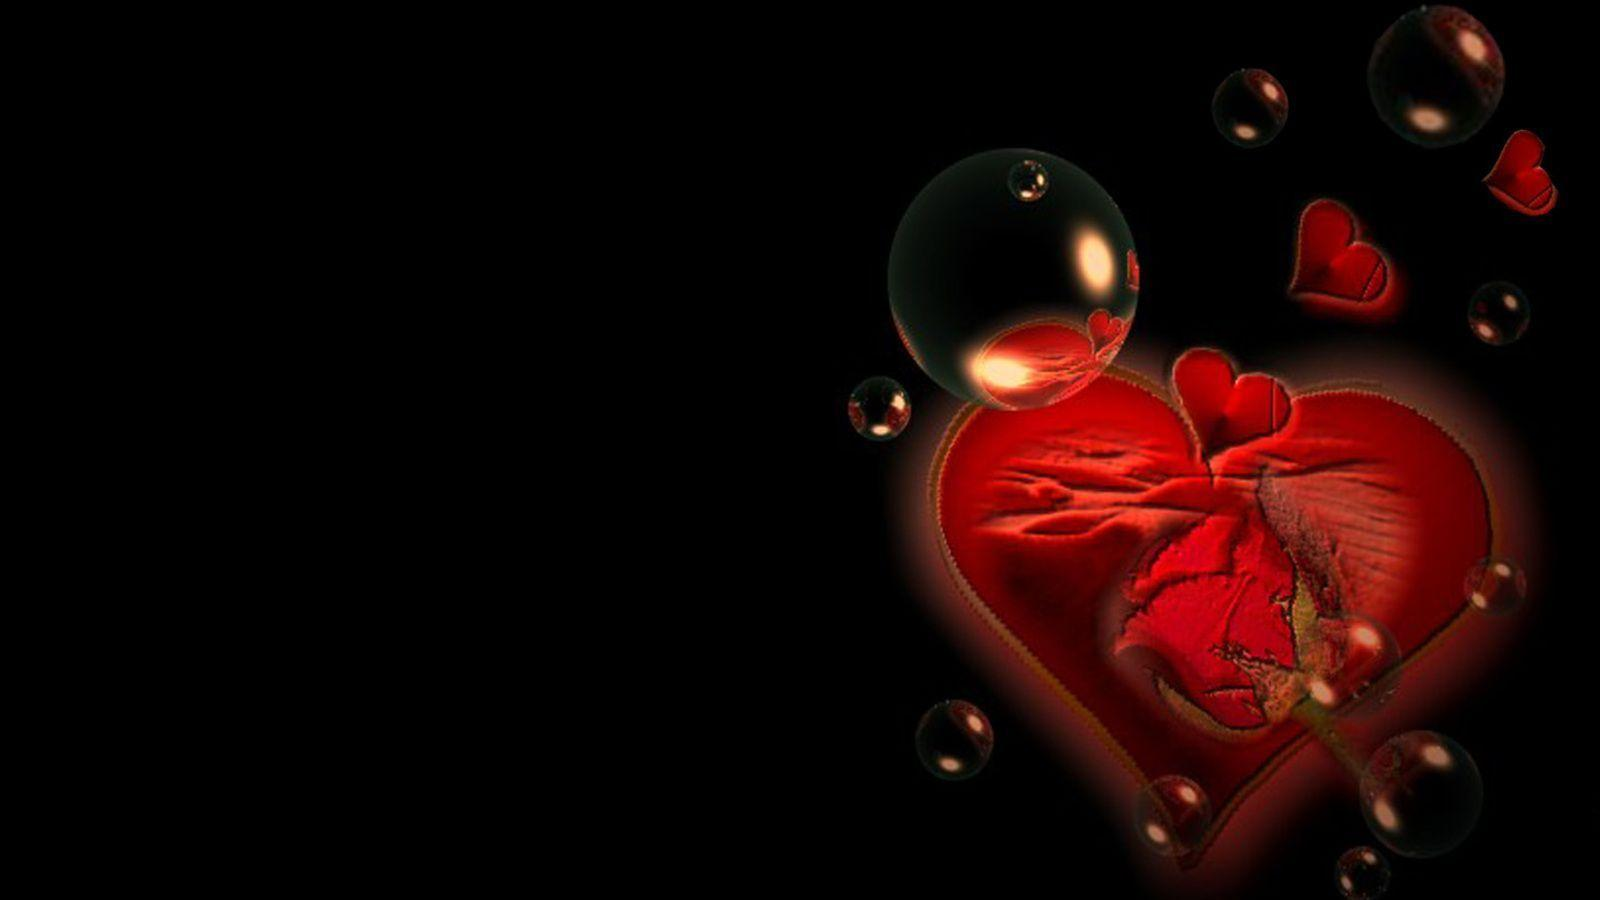 Love Wallpaper Wallpaper cave : Love 3D Wallpapers - Wallpaper cave